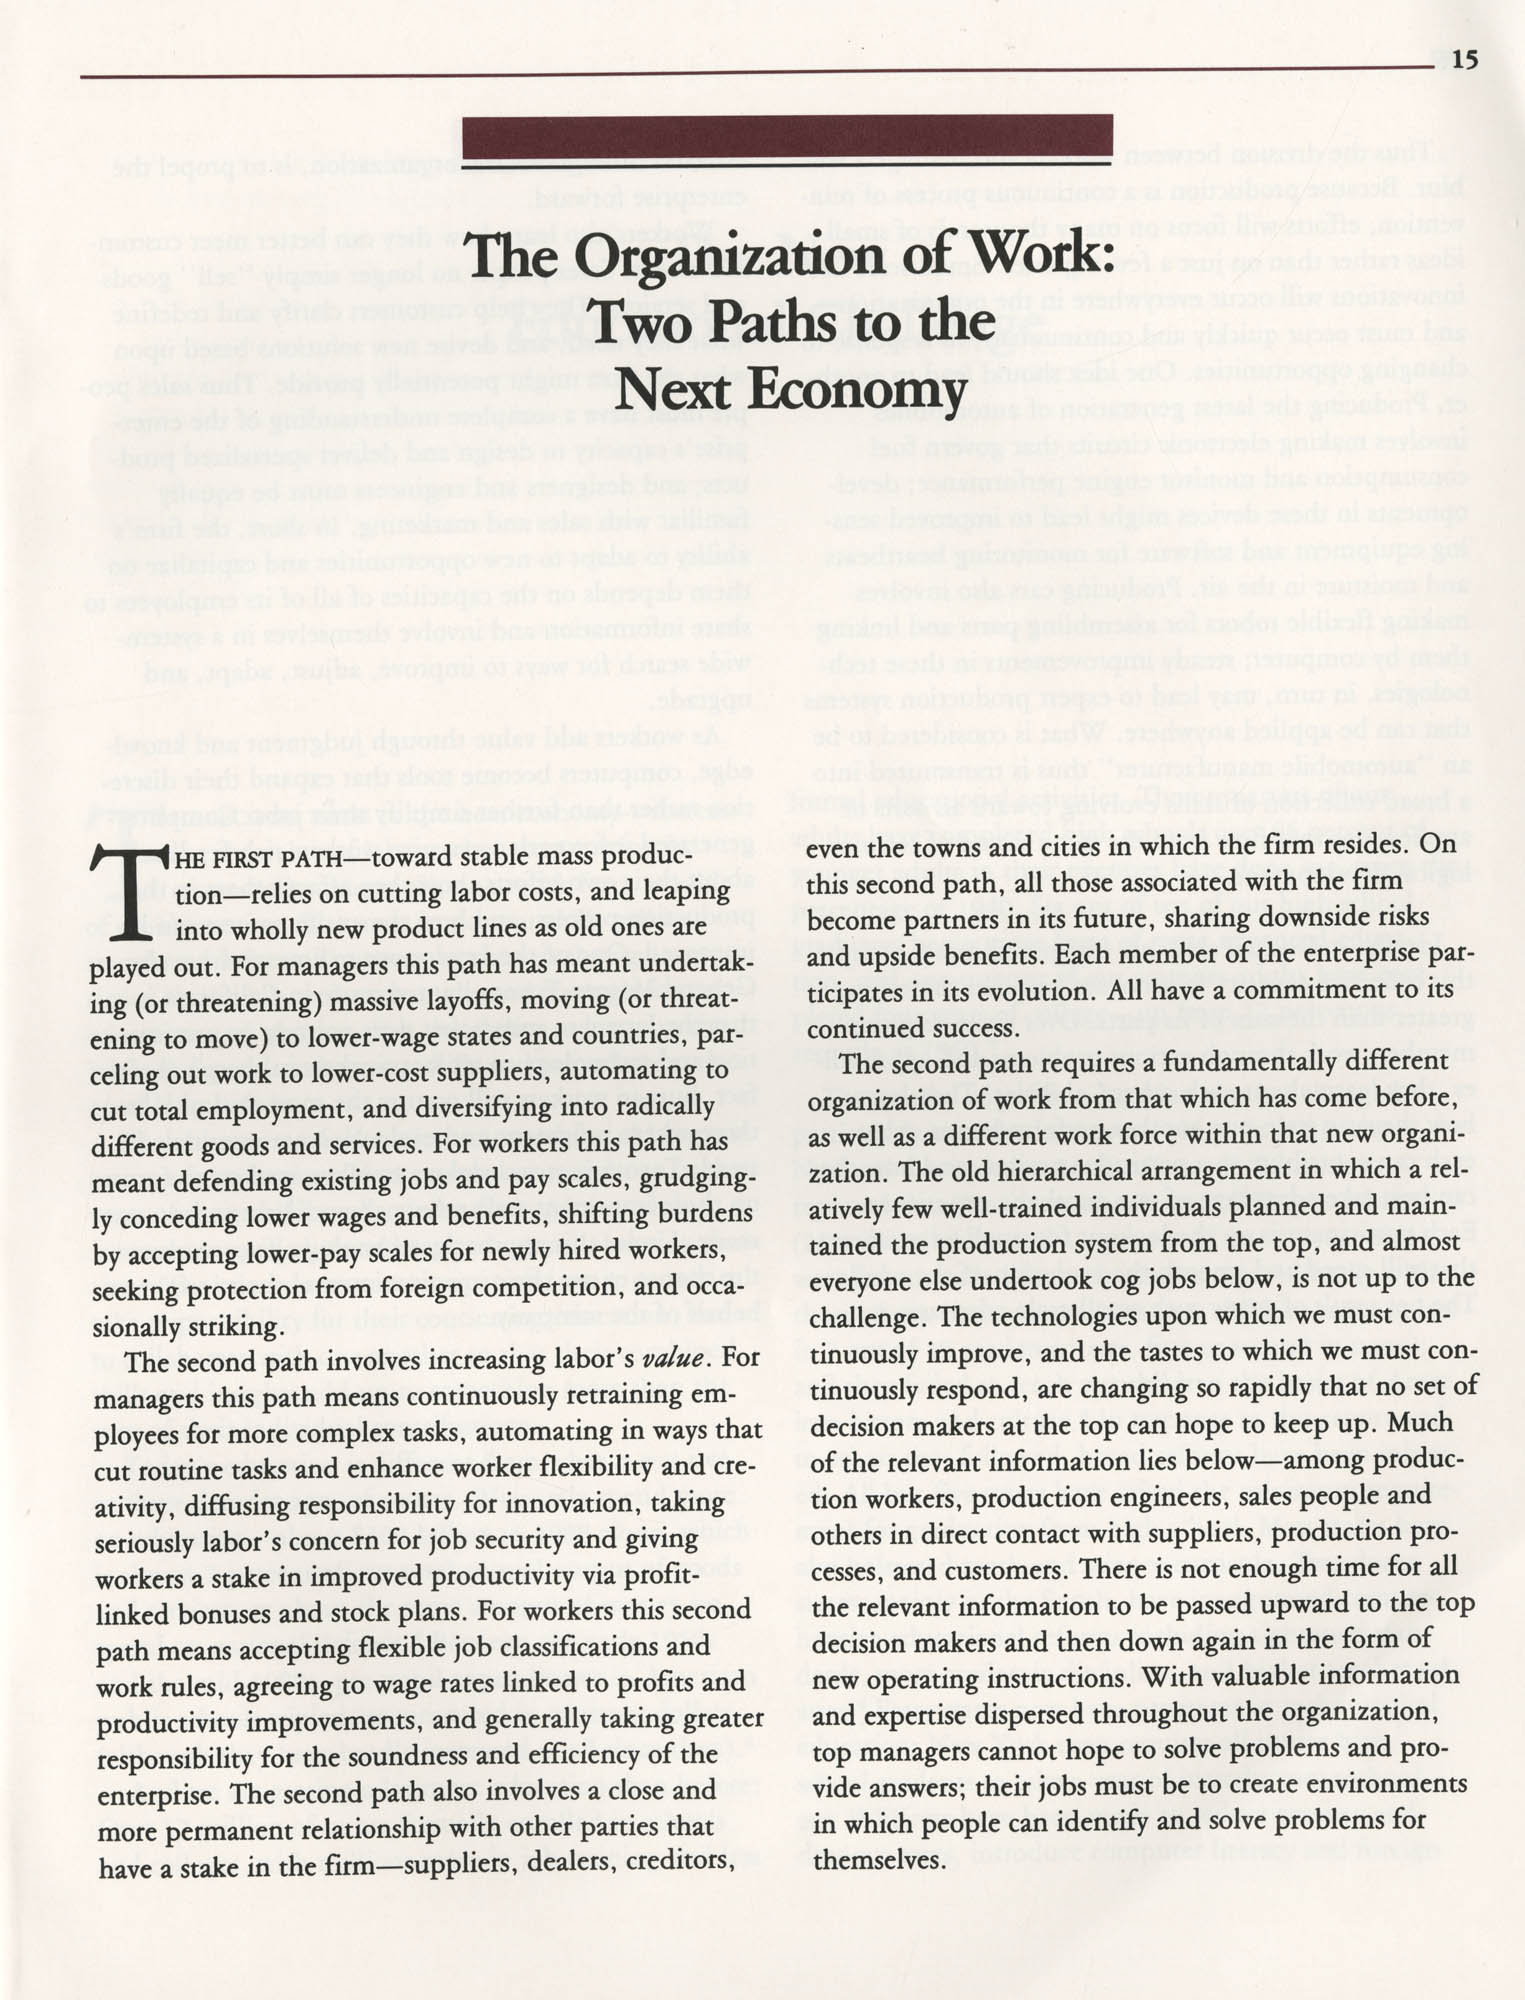 Education and the Next Economy, Page 15